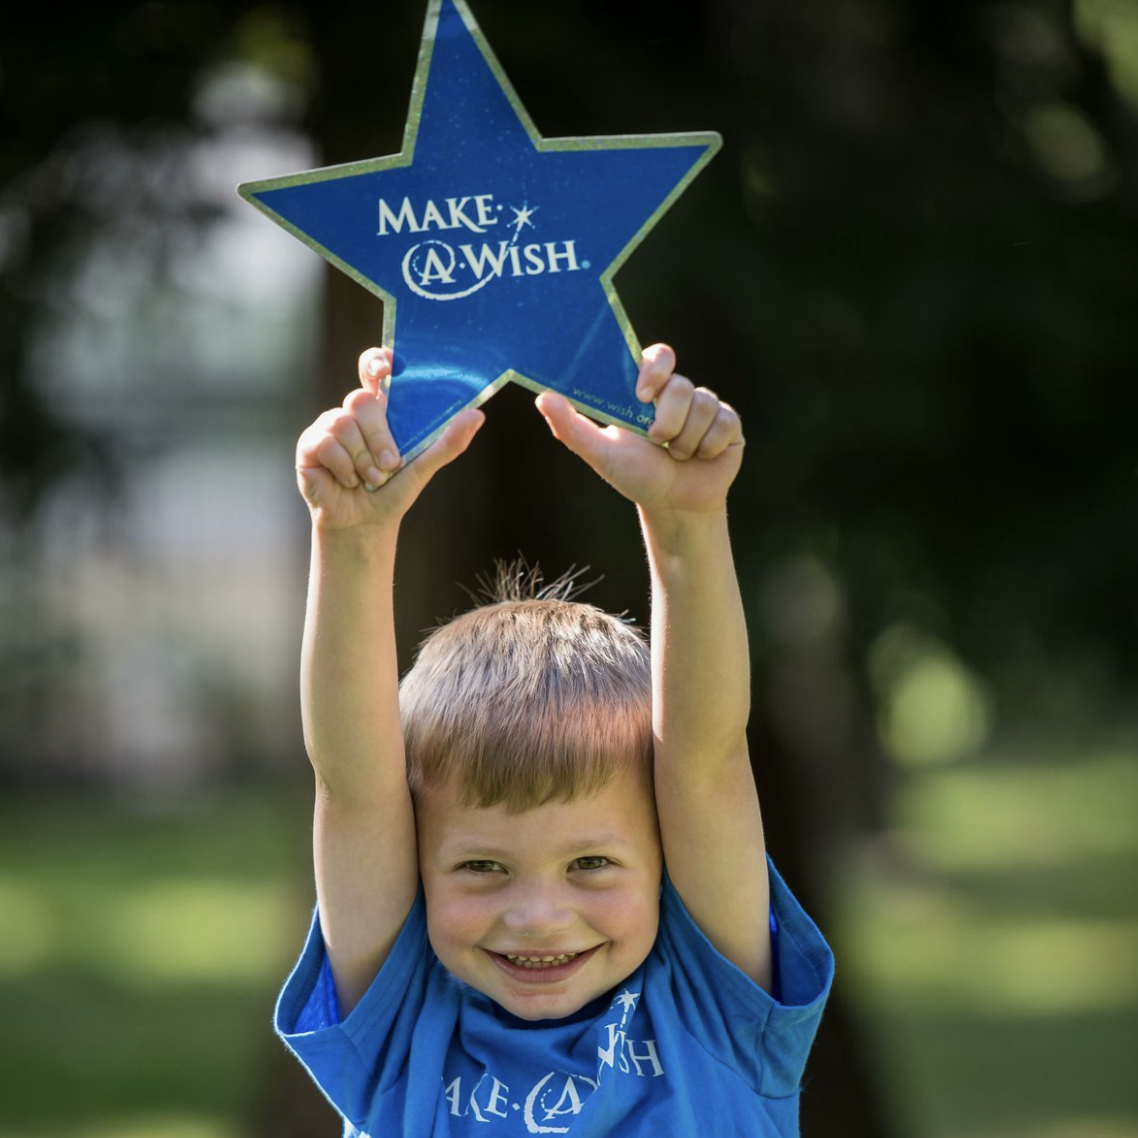 Make a Wish - Make a Wish for a child